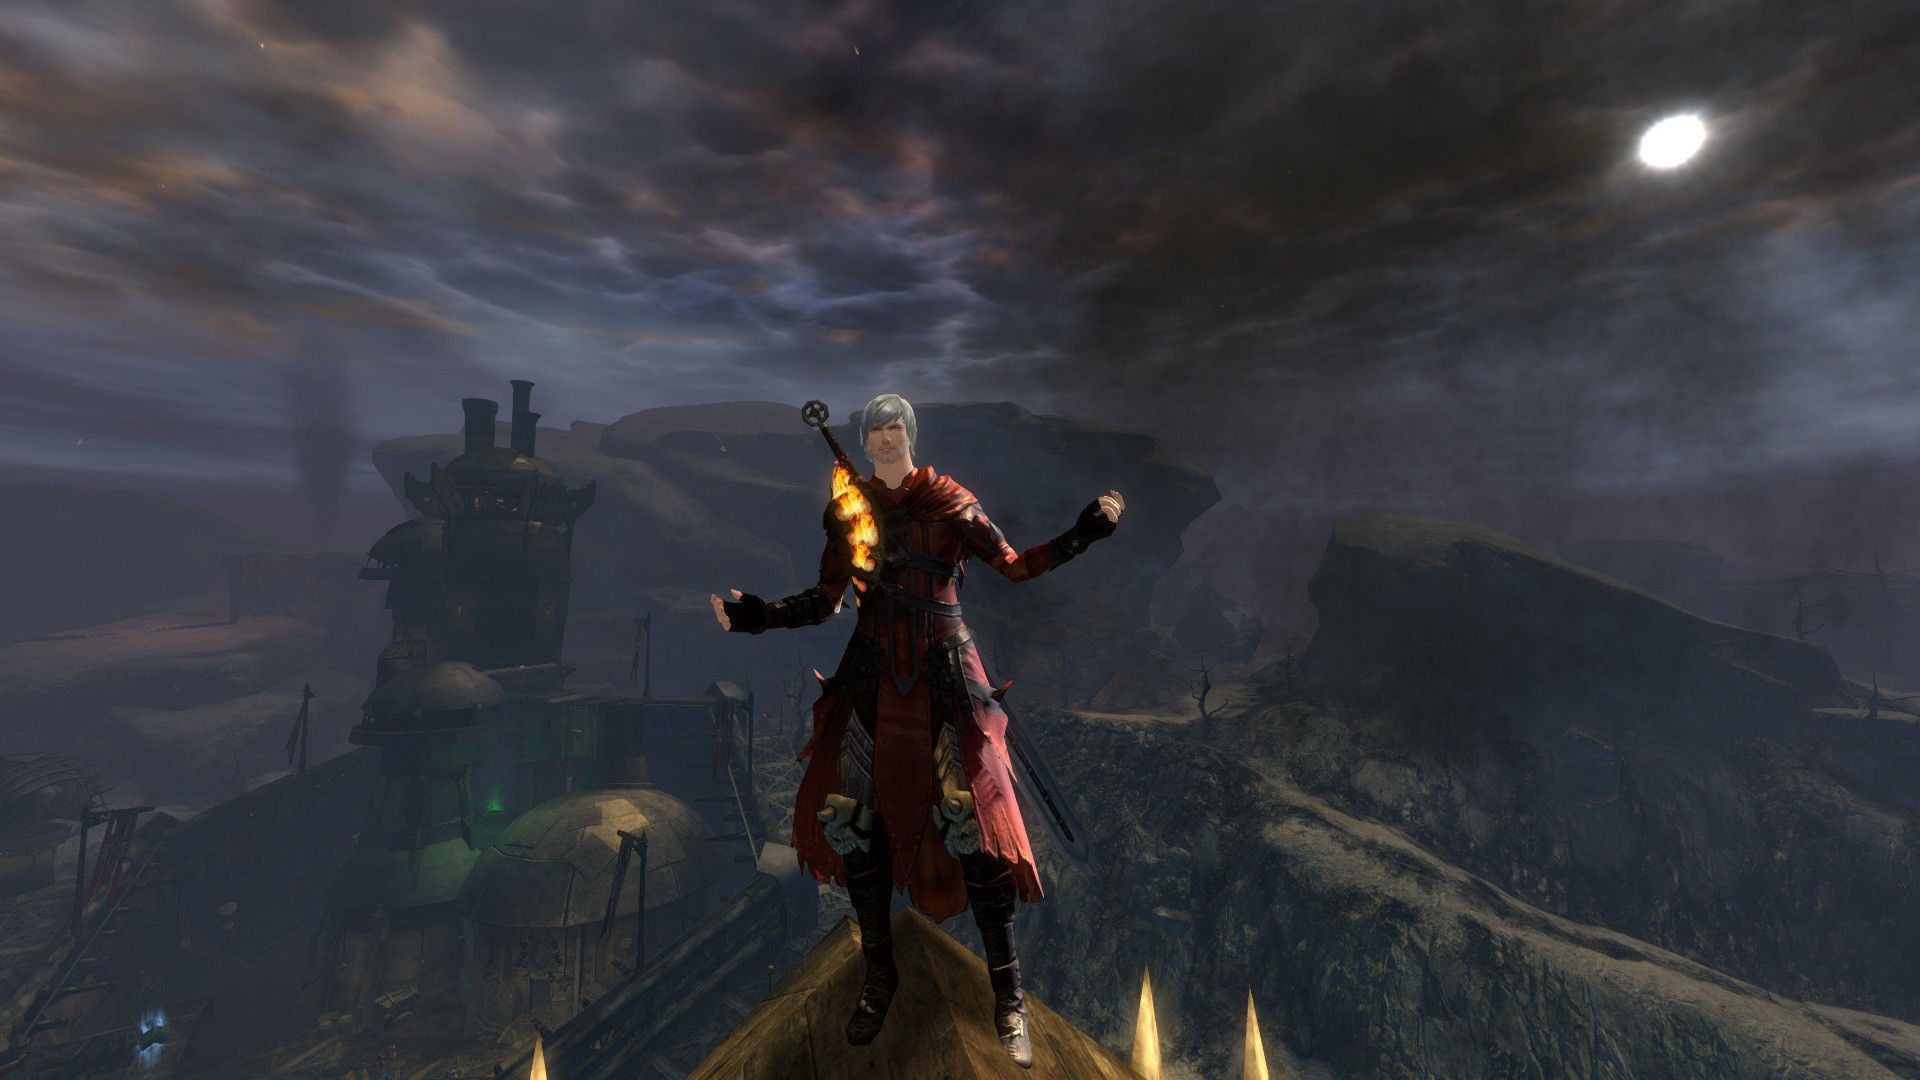 Guild Wars 2 Fashion - Dante from Devil May Cry 4   Guild Wars 2